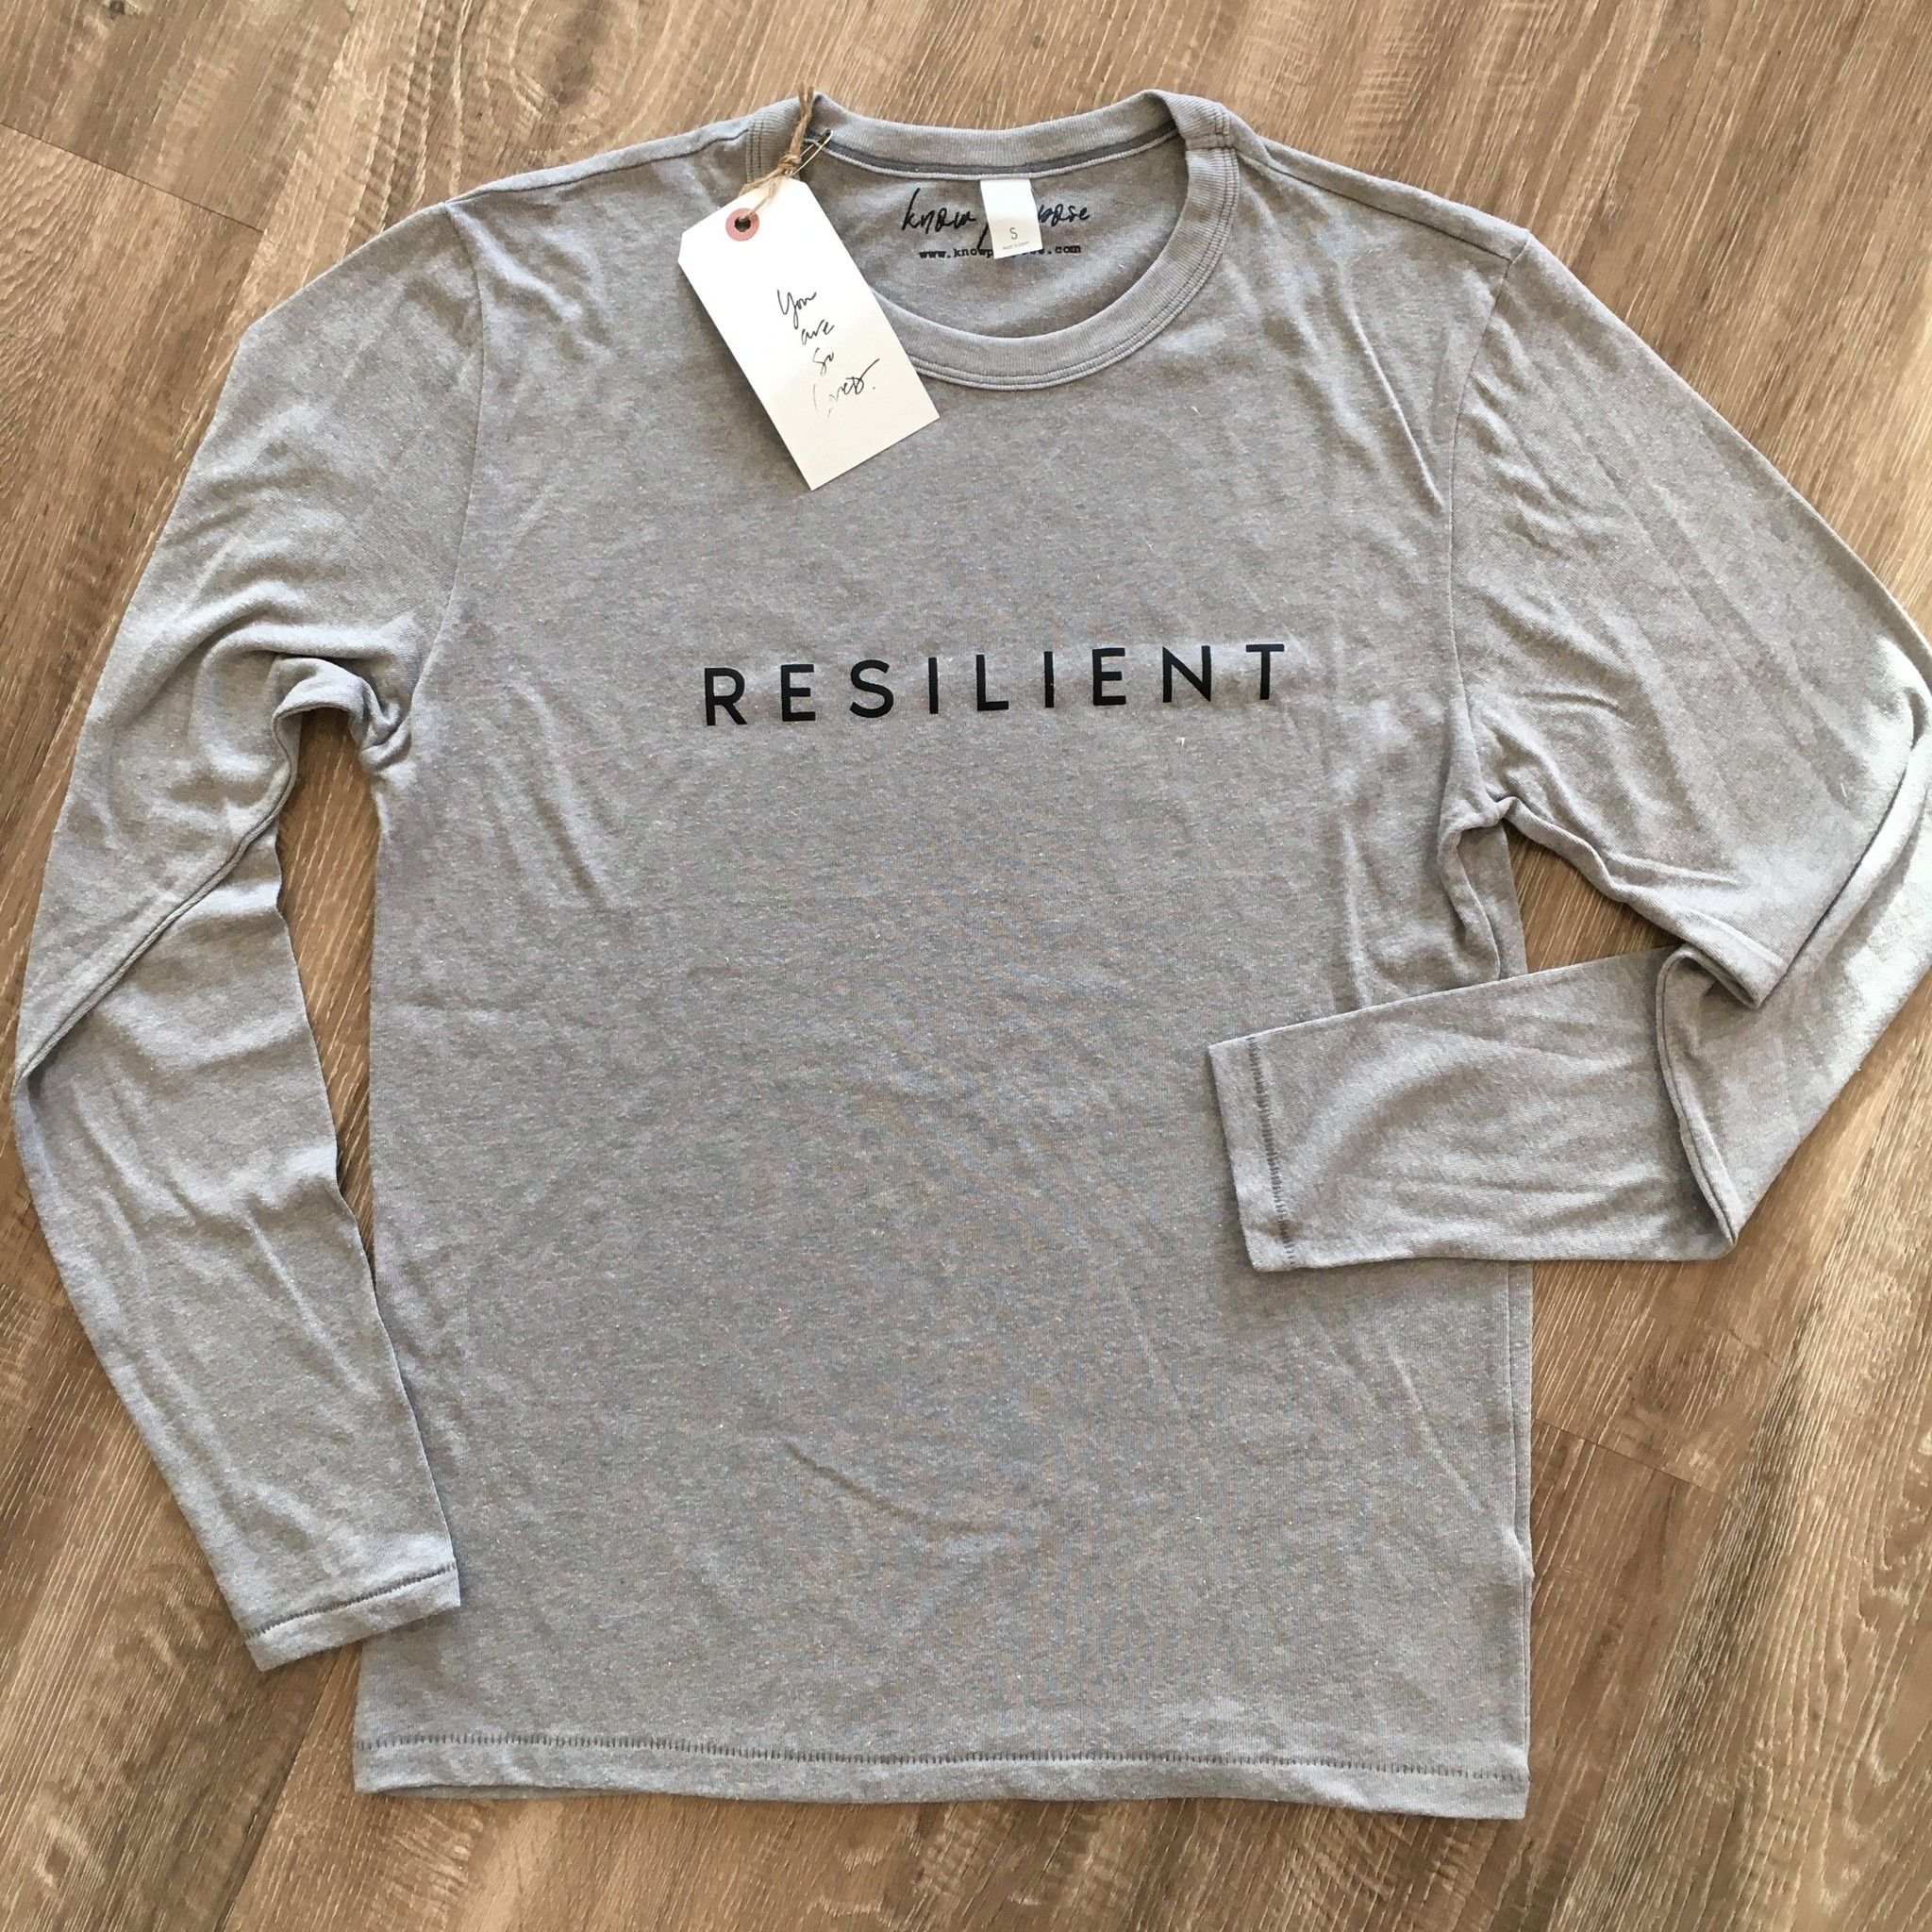 Know Purpose 'Resilient' Long Sleeve Tee